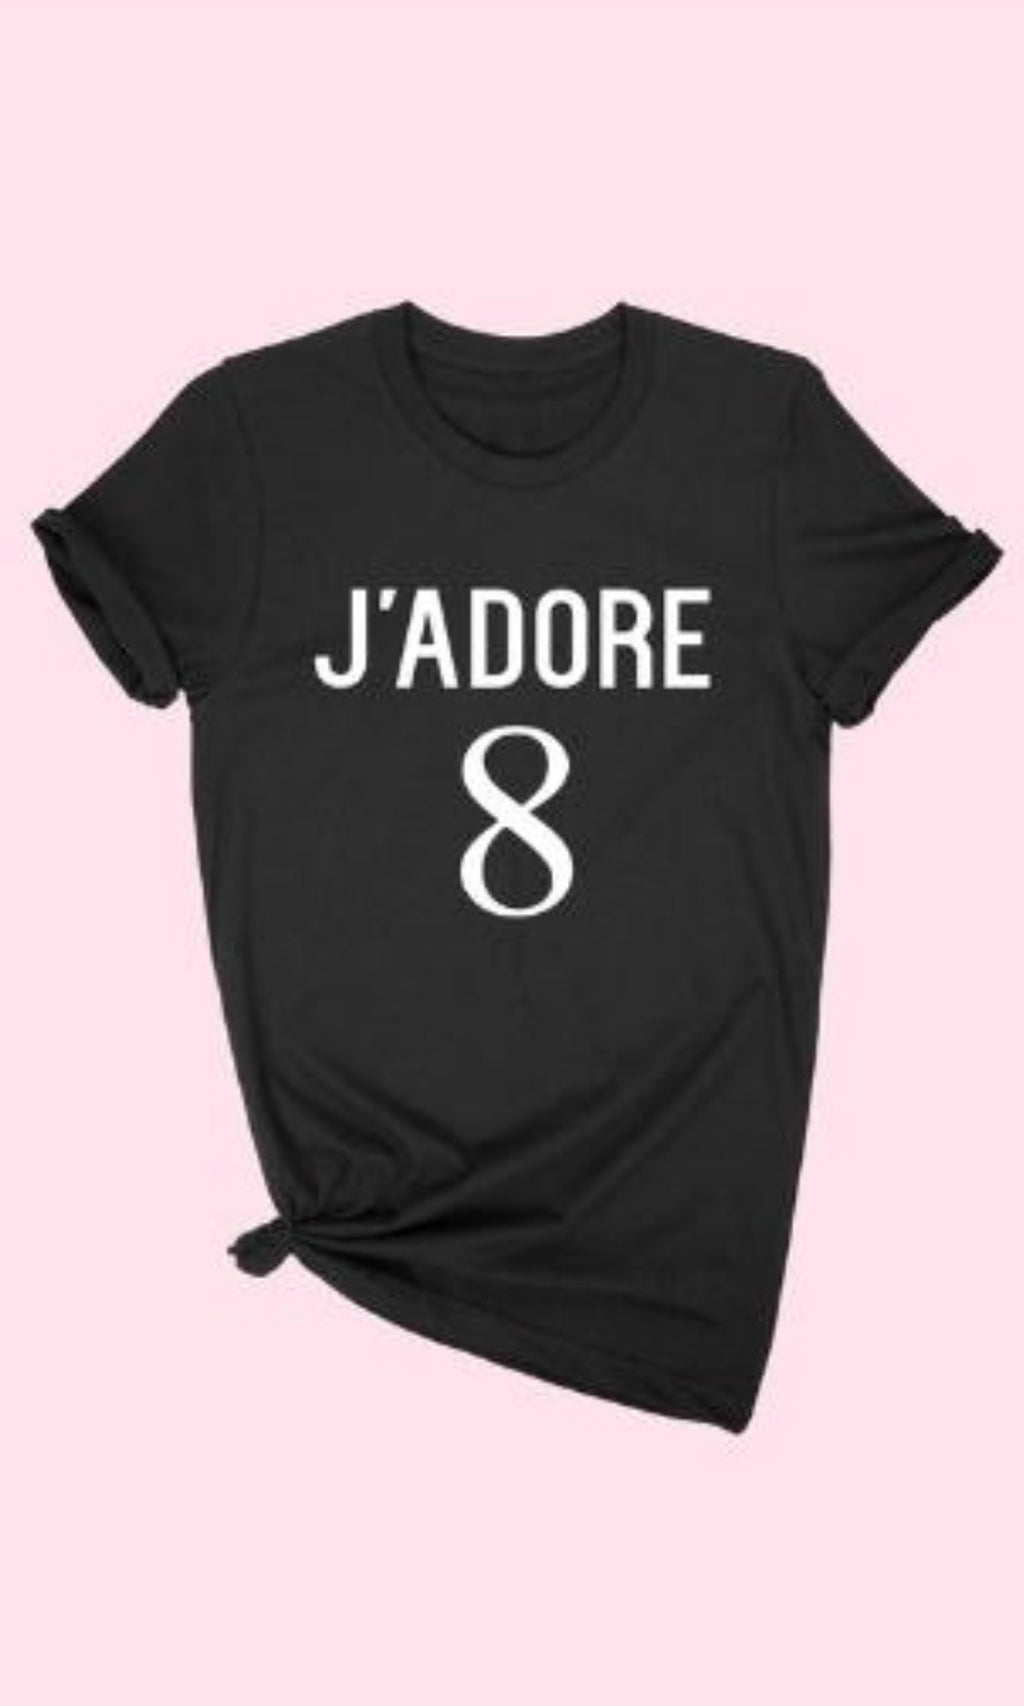 J'adore T-Shirt - OWN YOUR ELEGANCE